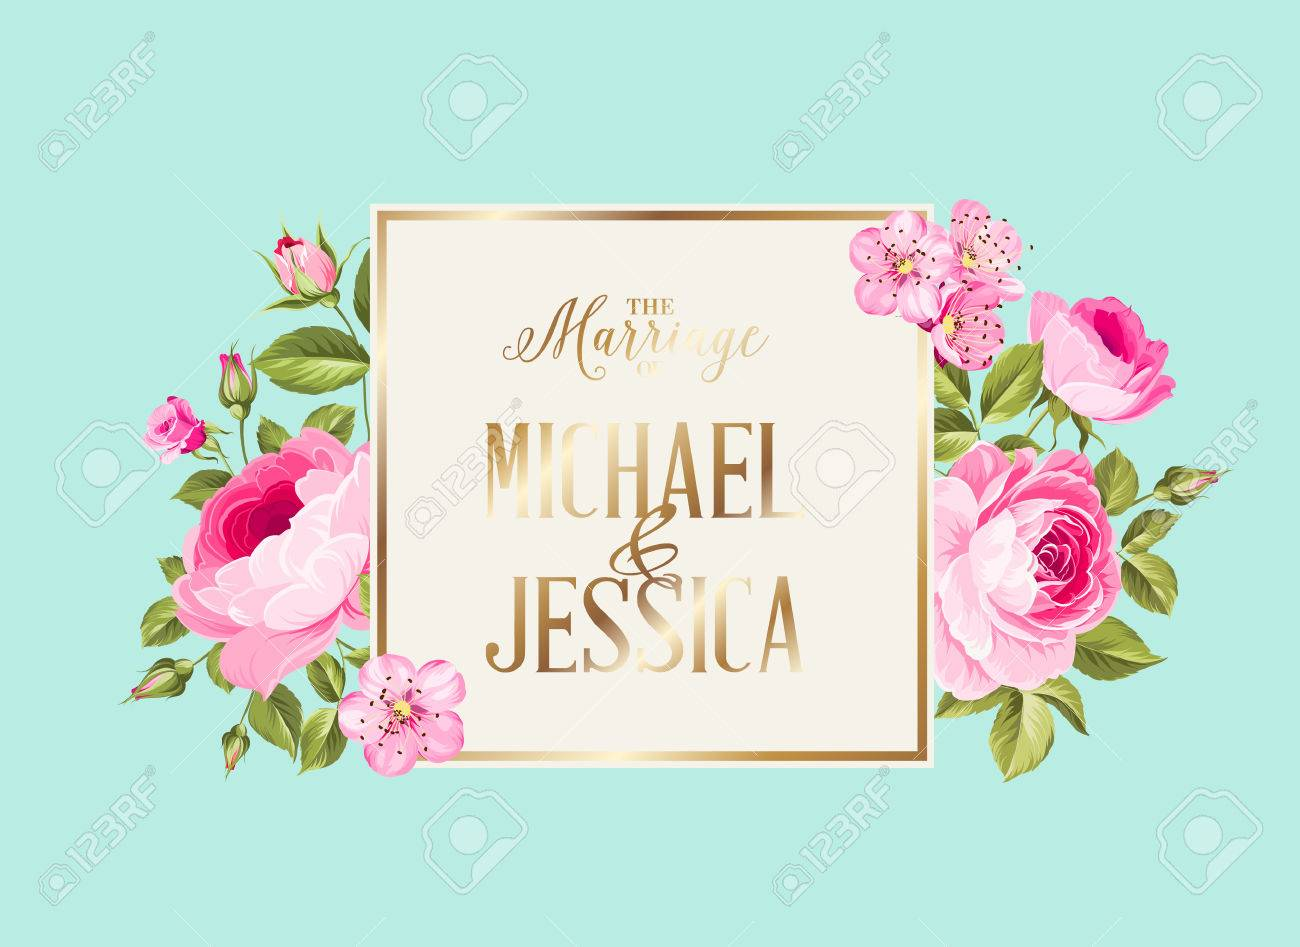 Marriage Invitation Card With Pink Flowers And Template Names